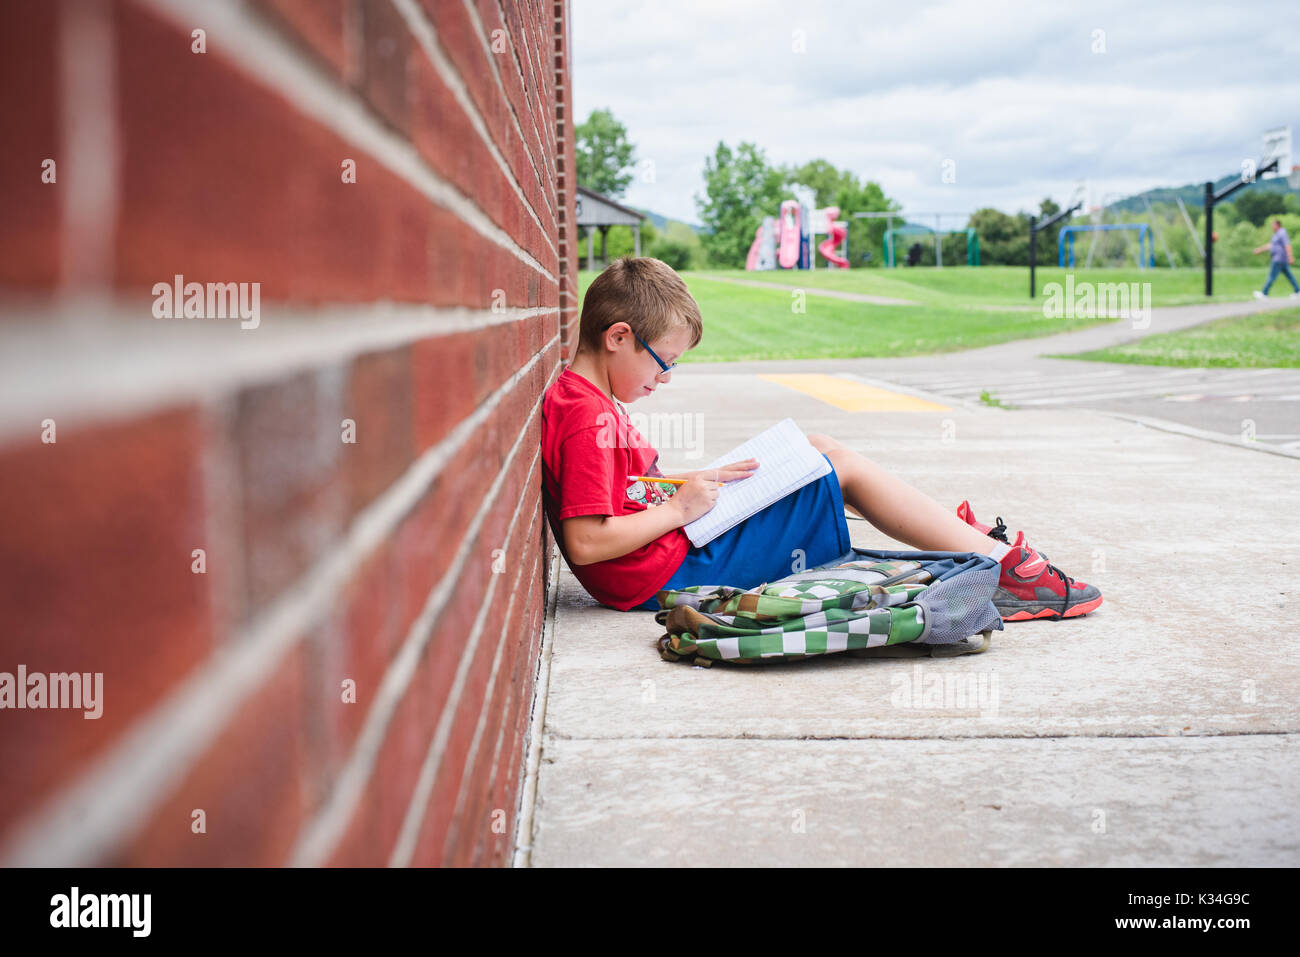 A boy studies a book while leaning against a brick wall of a school - Stock Image